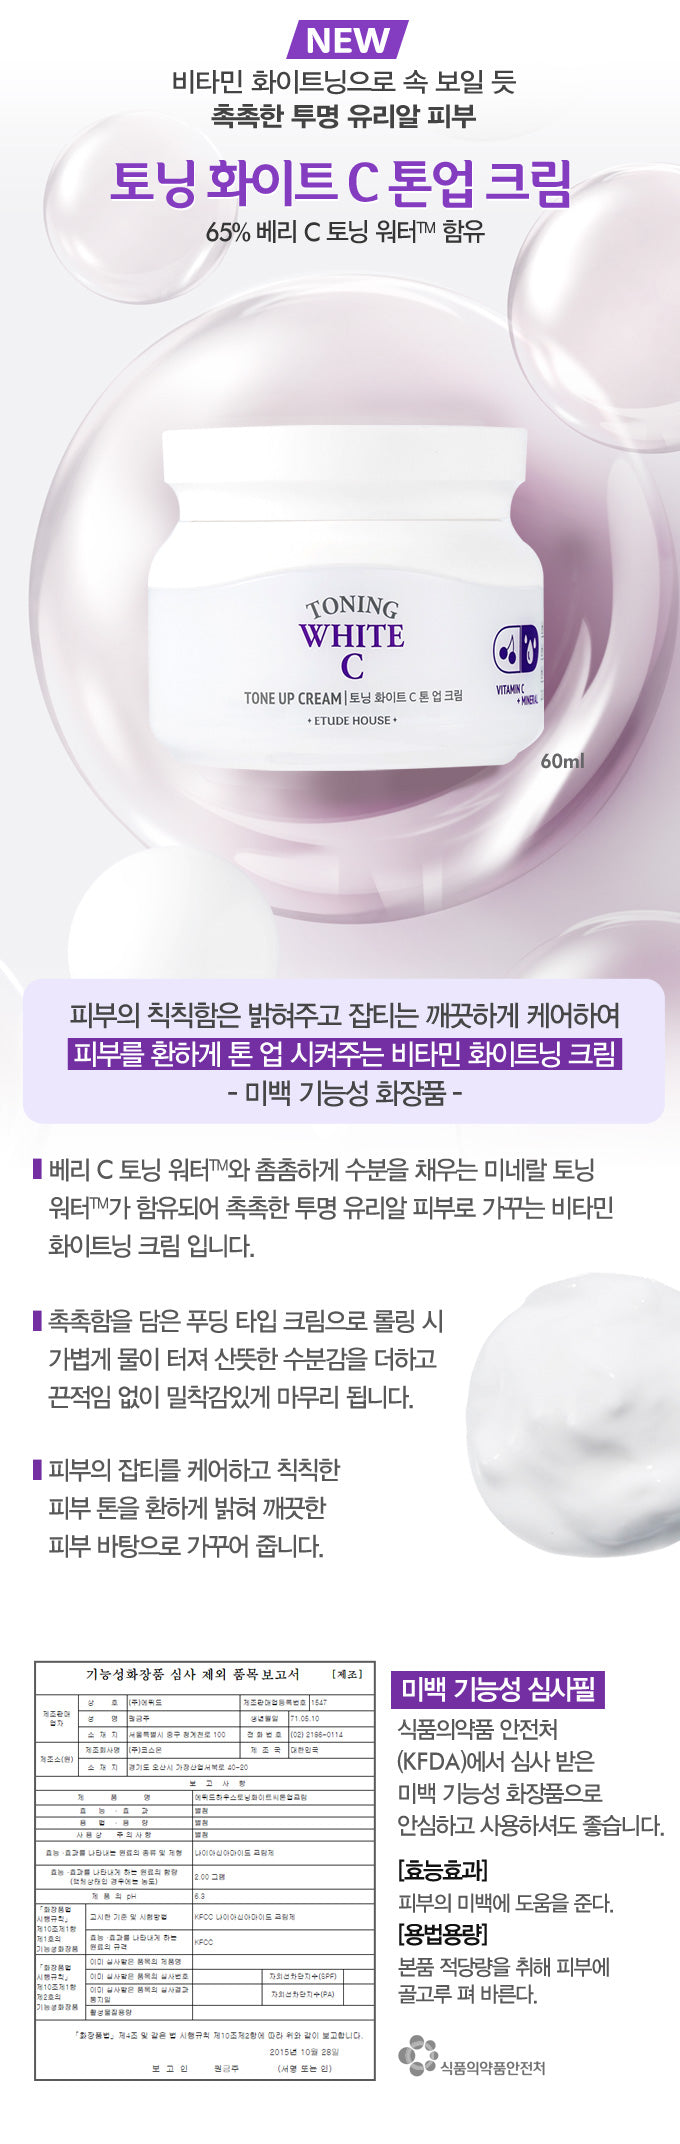 Etude House - Toning White C Tone UP Cream